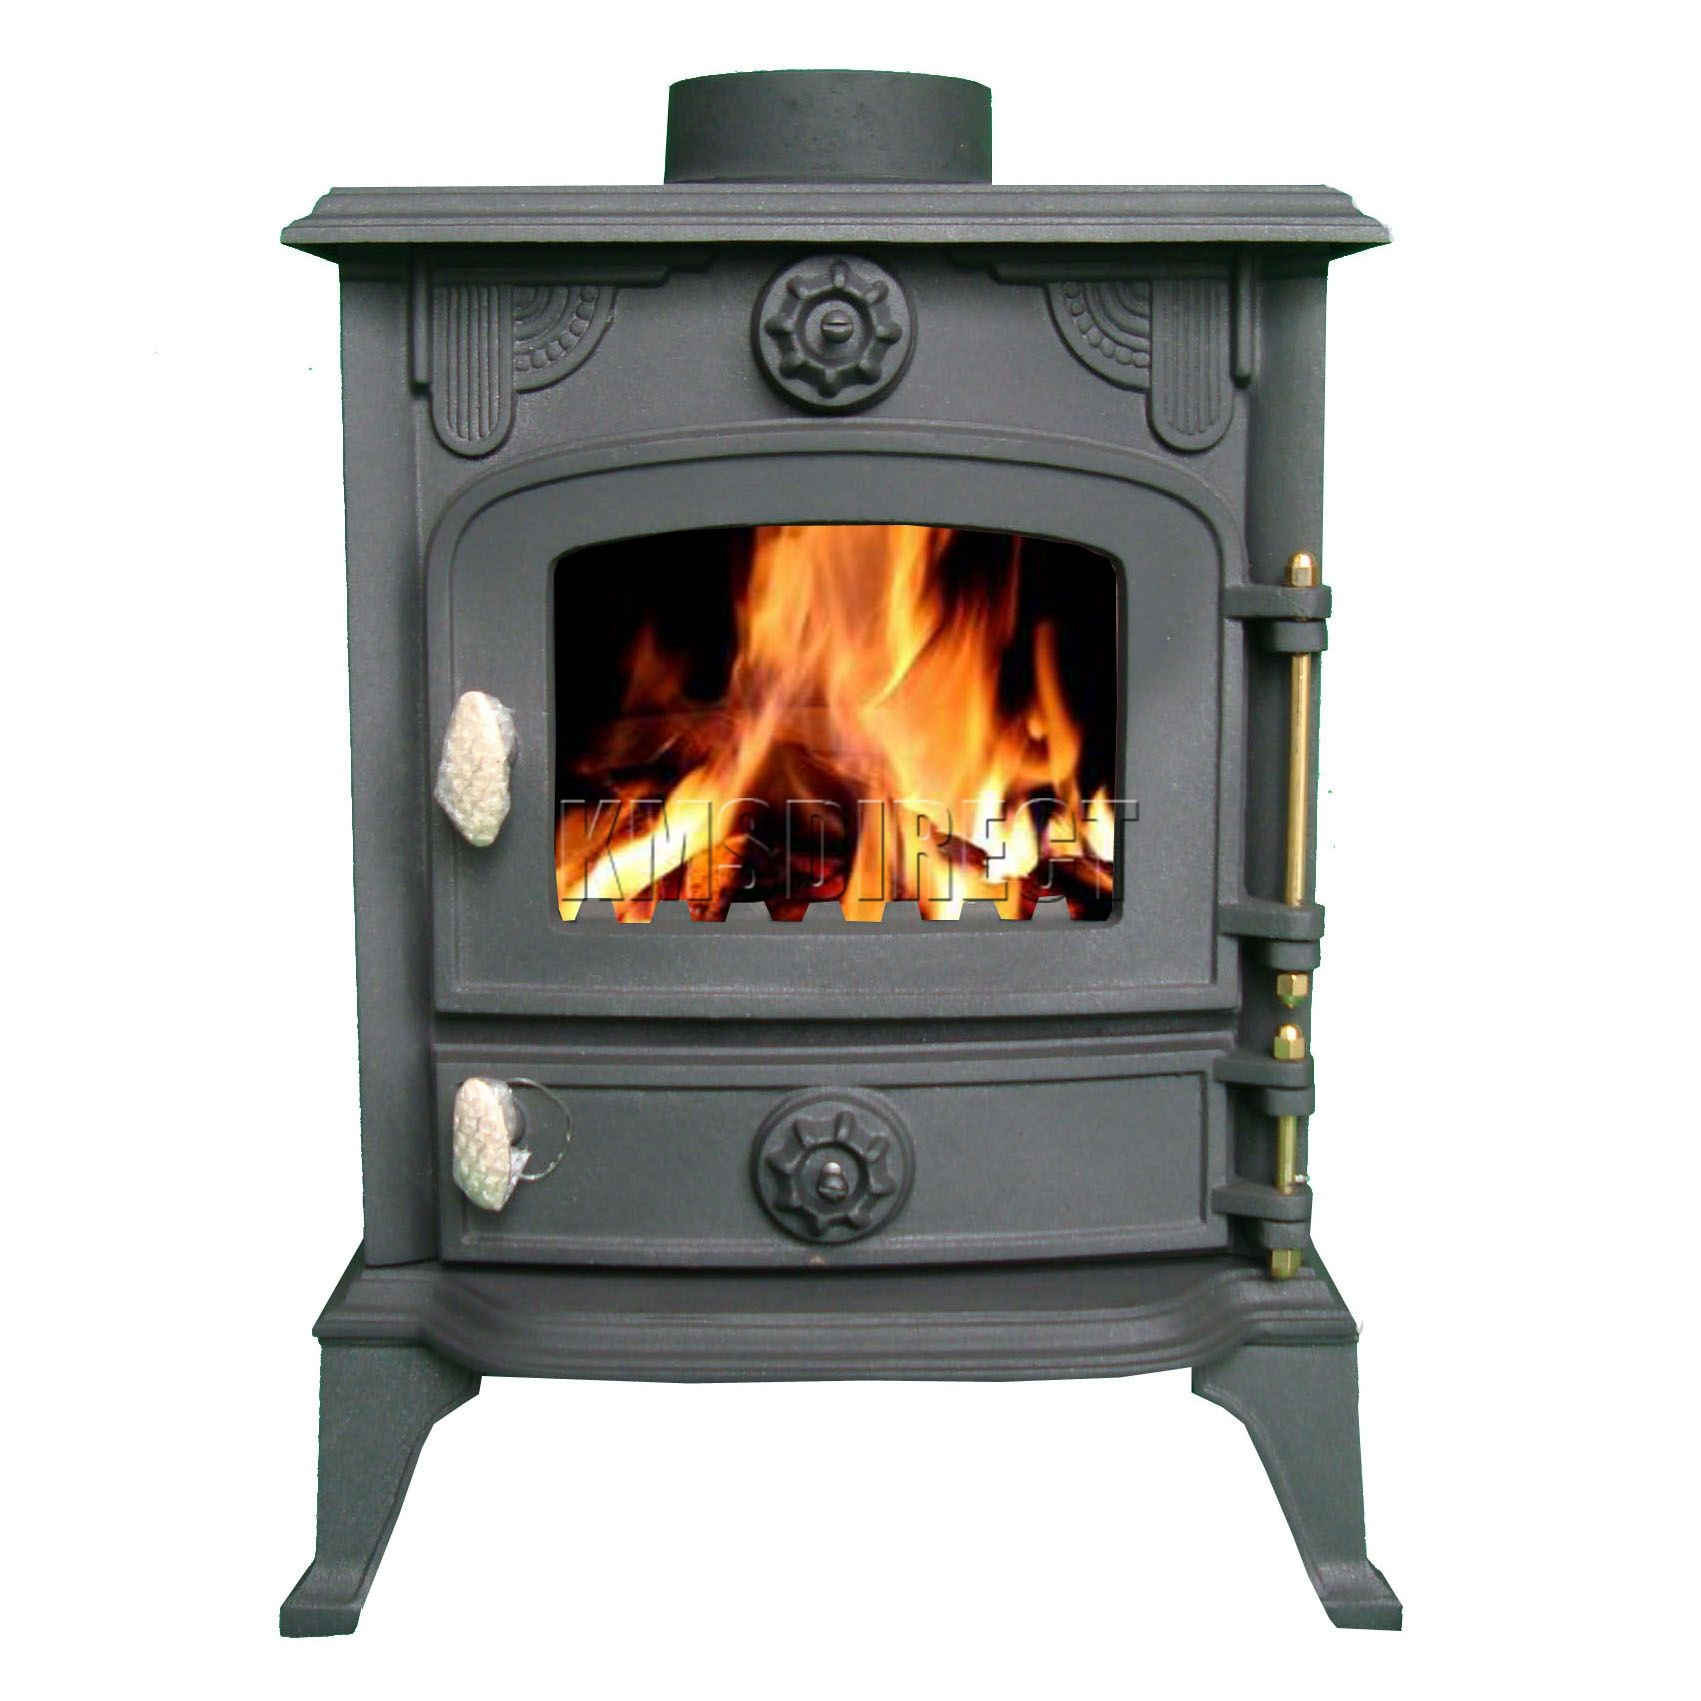 new cast iron log burner multifuel wood burning 6 kw stove